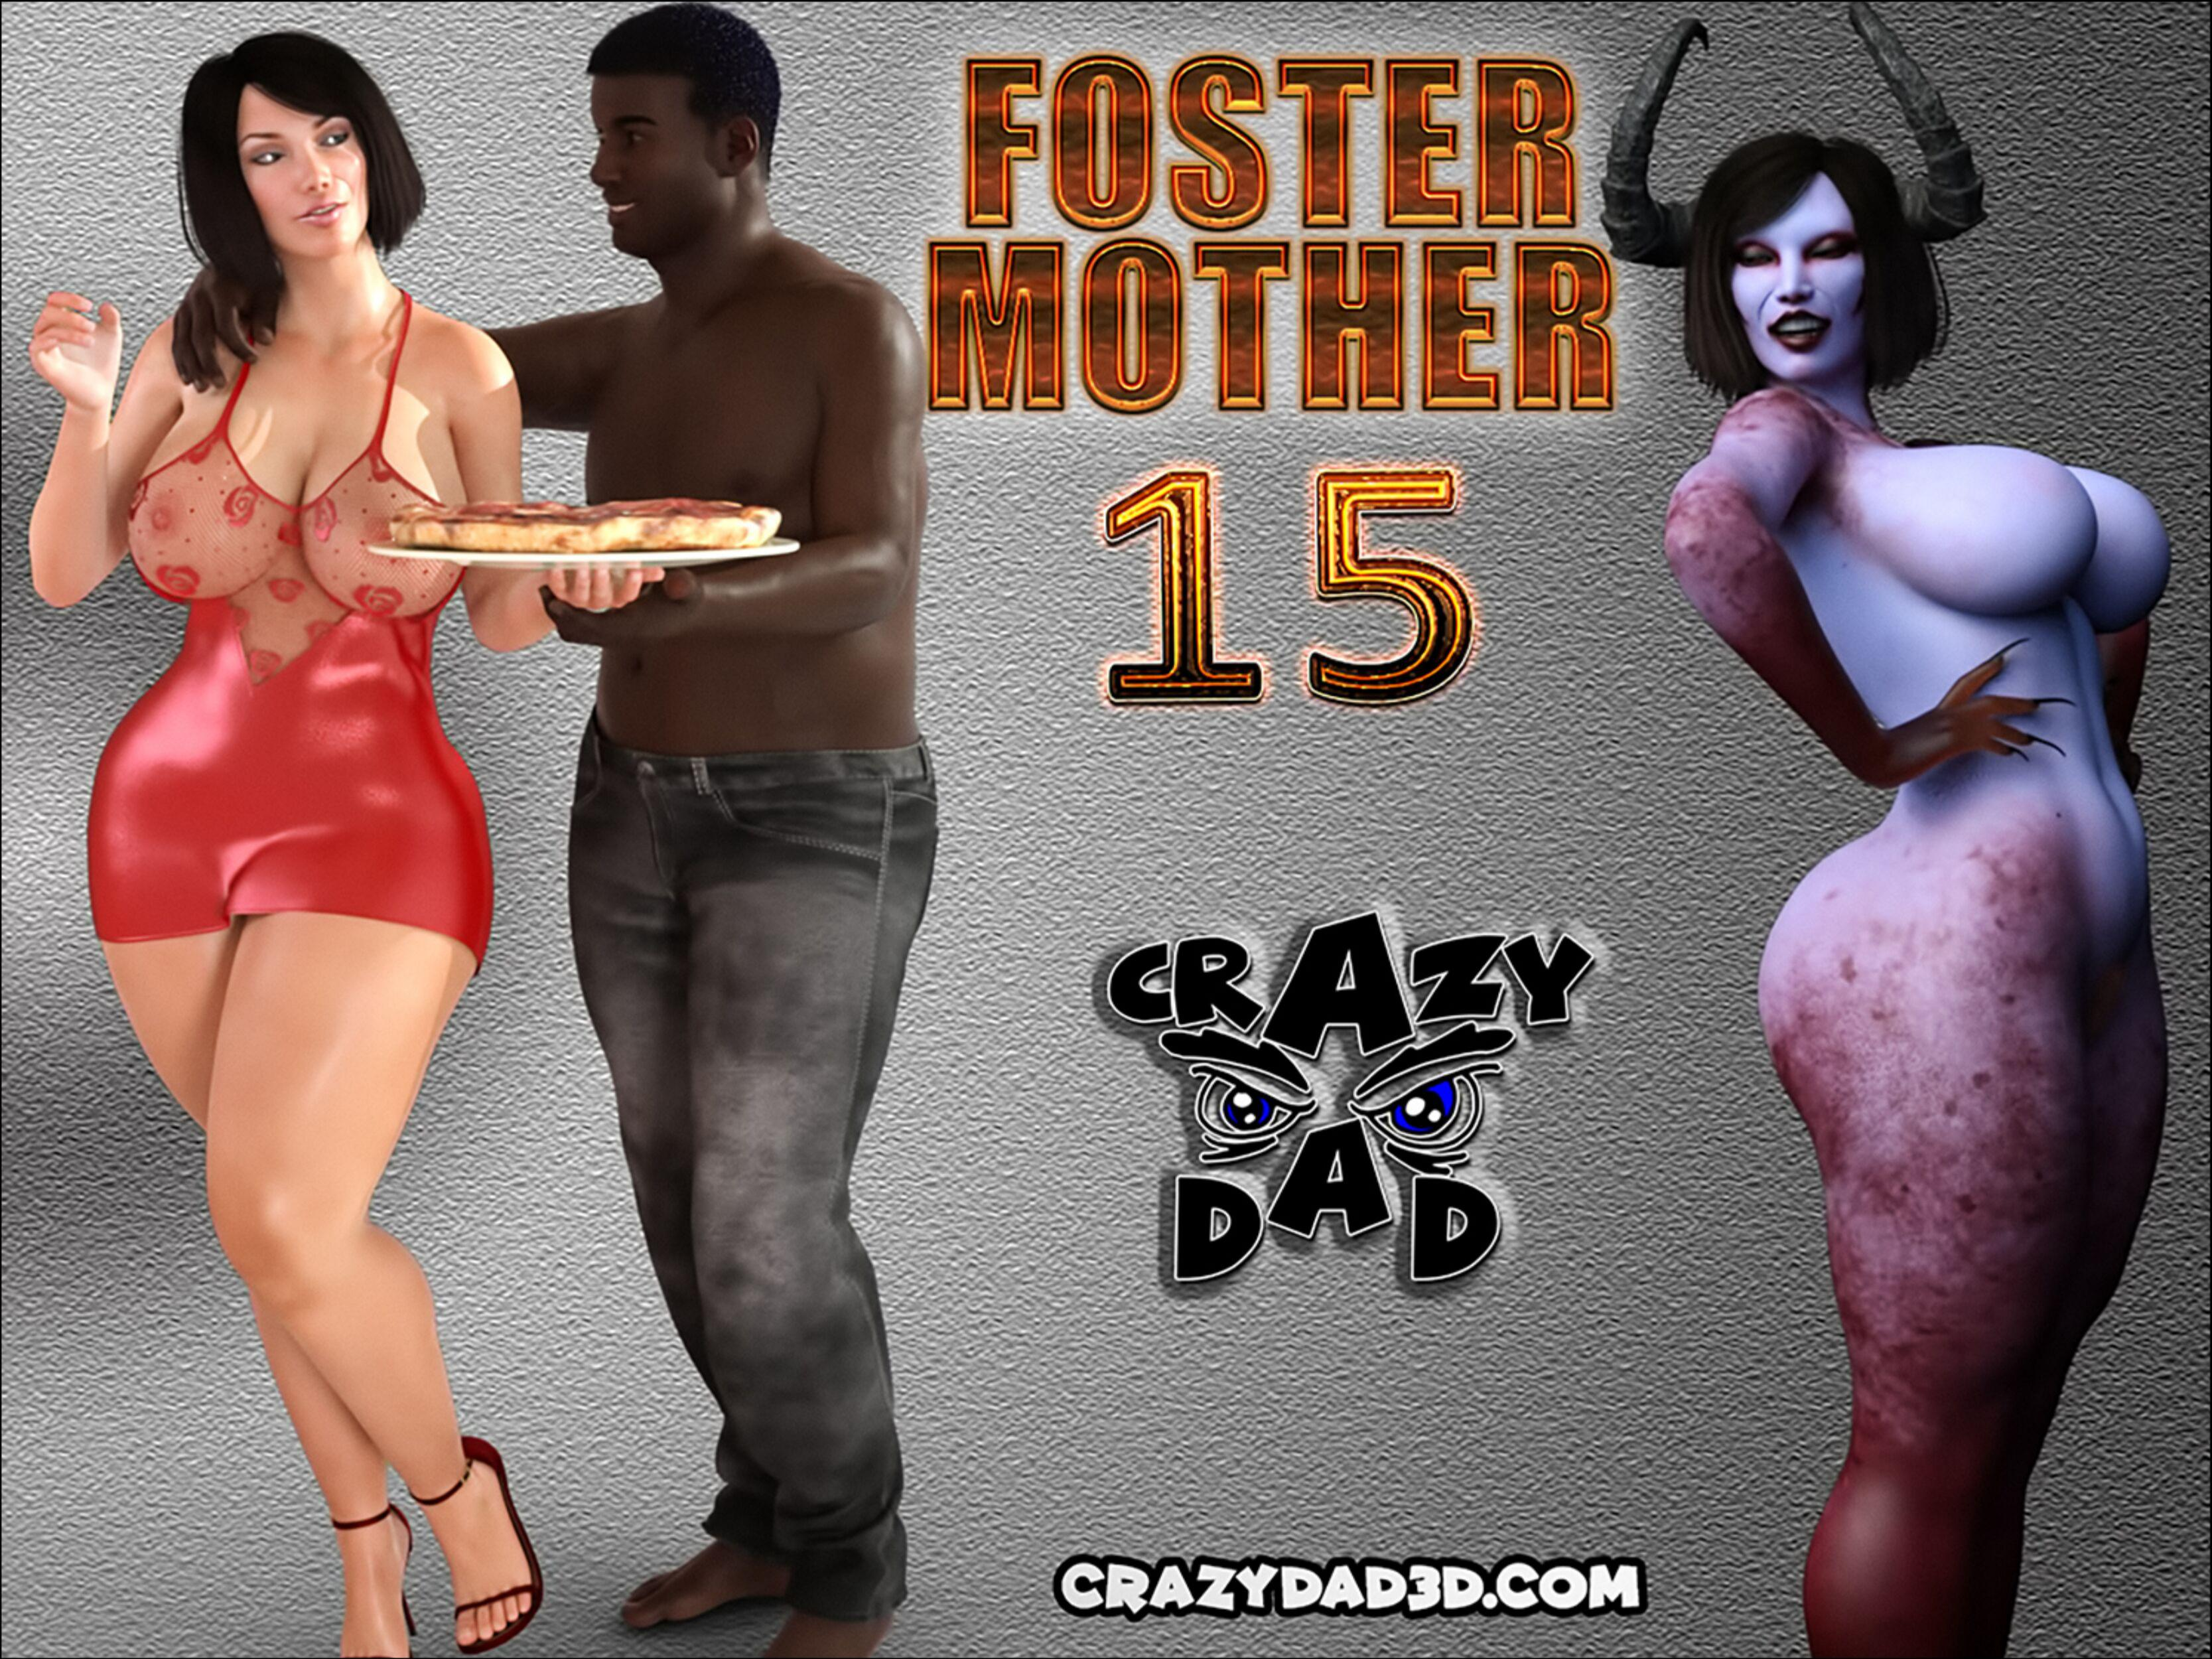 CrazyDad3D - Foster Mother 1-15